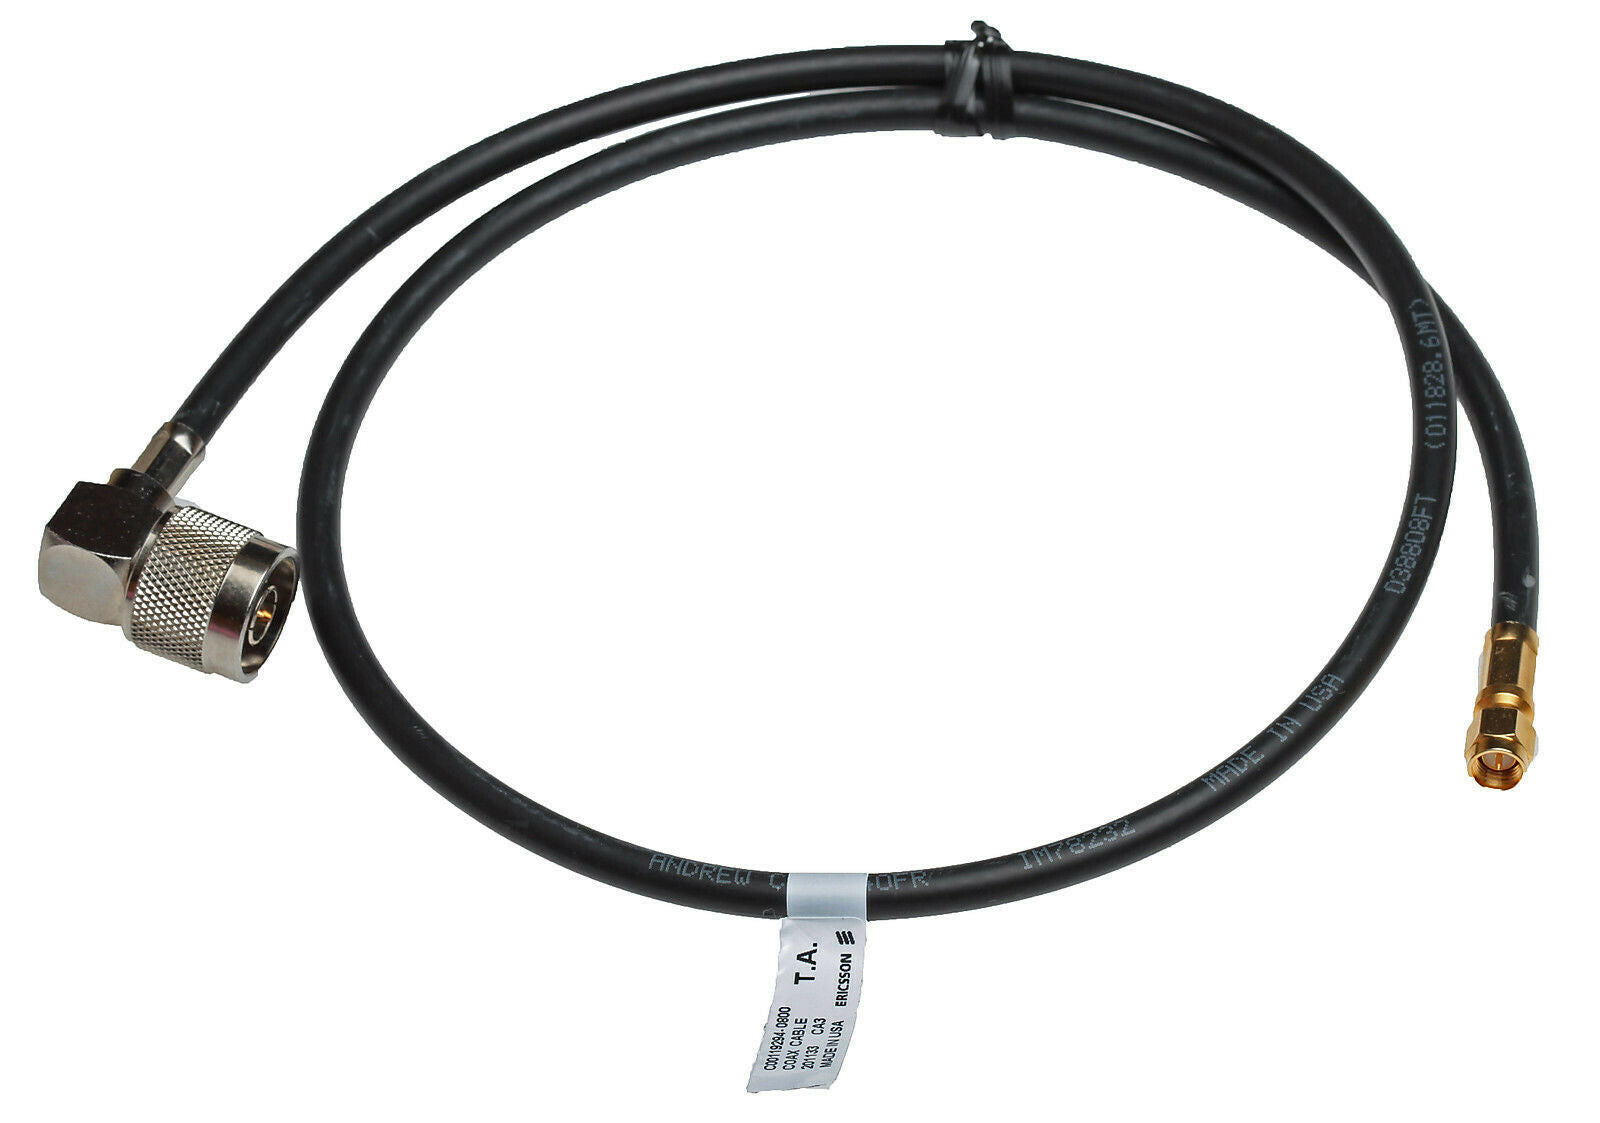 Coax 30in Pigtail N Male to SMA Male Andrew CNT-240-FR RG-8X 50Ω Jumper Cable-www.prostudioconnection.com